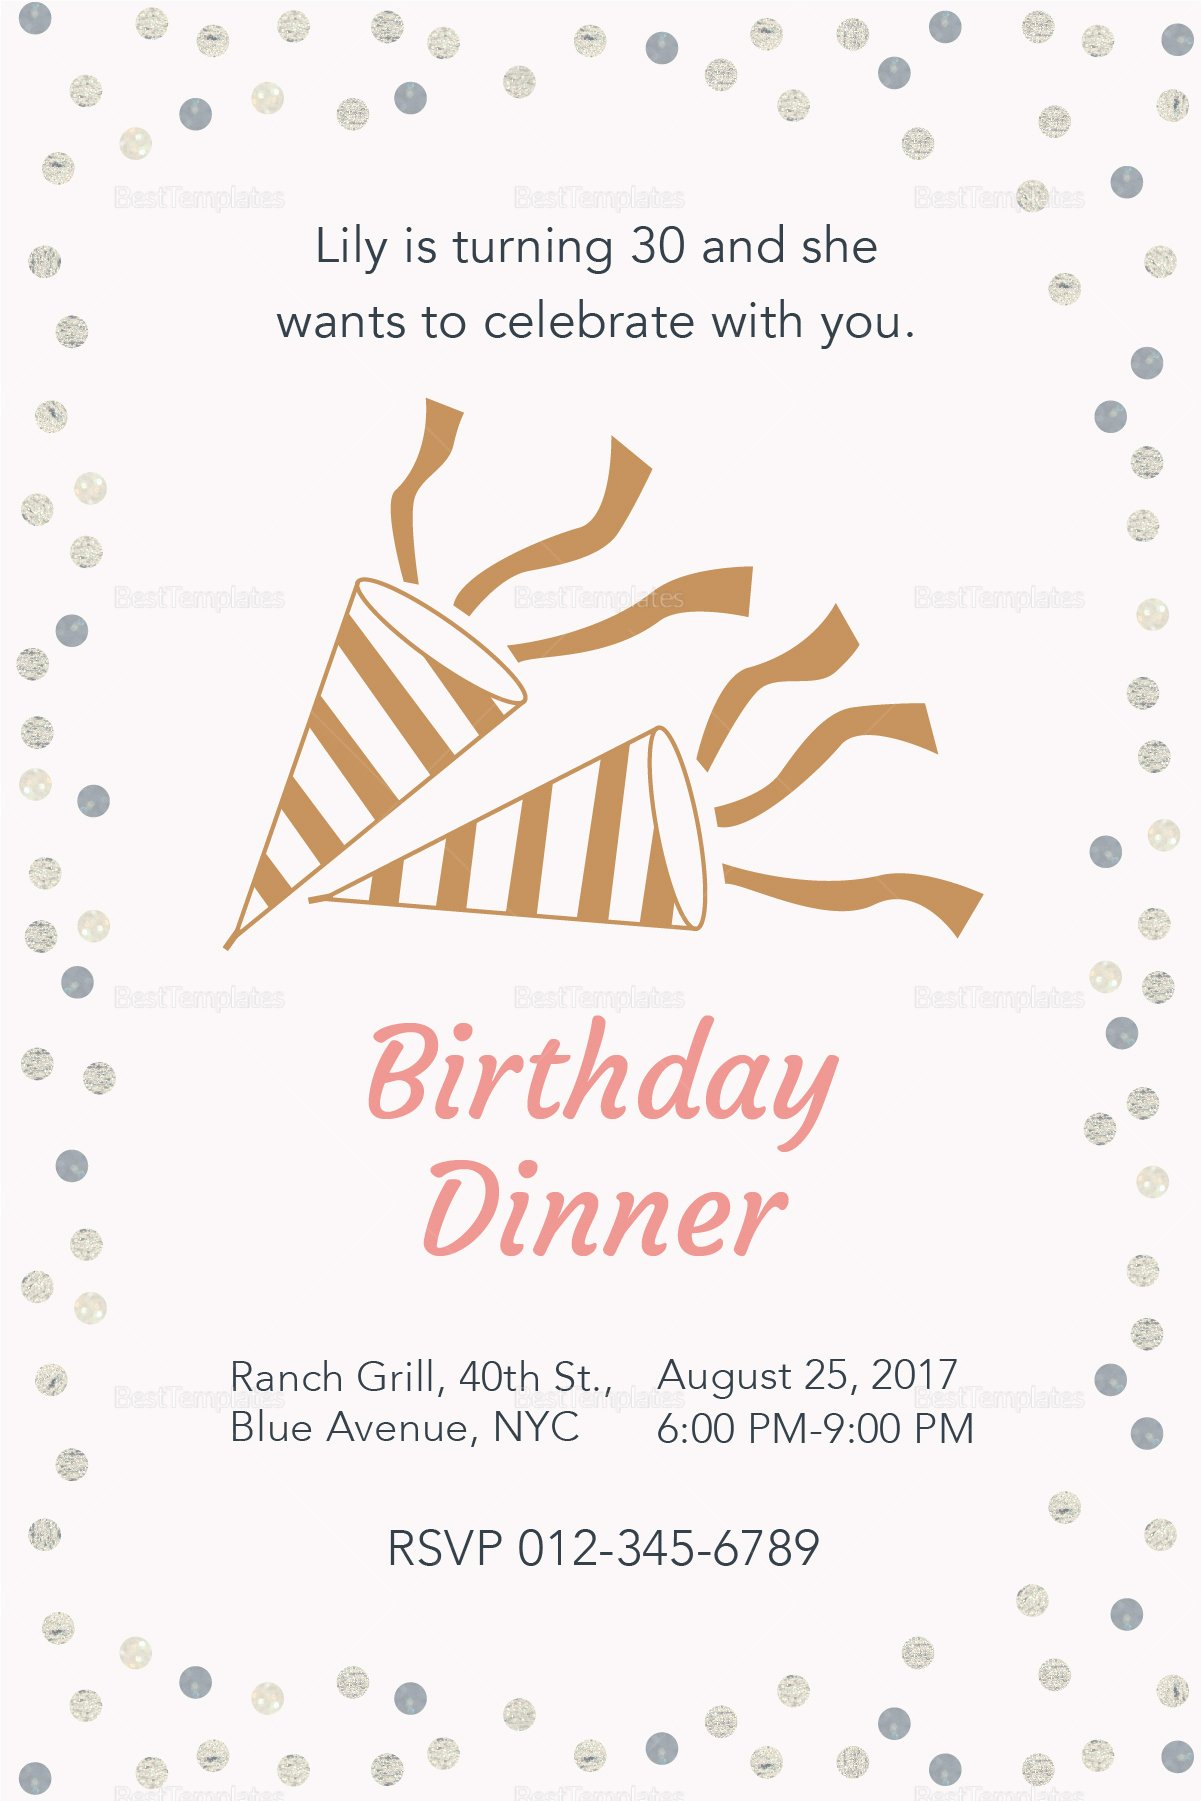 Dinner Invitation Template Word Best Of Birthday Dinner Invitation Design Template In Psd Word